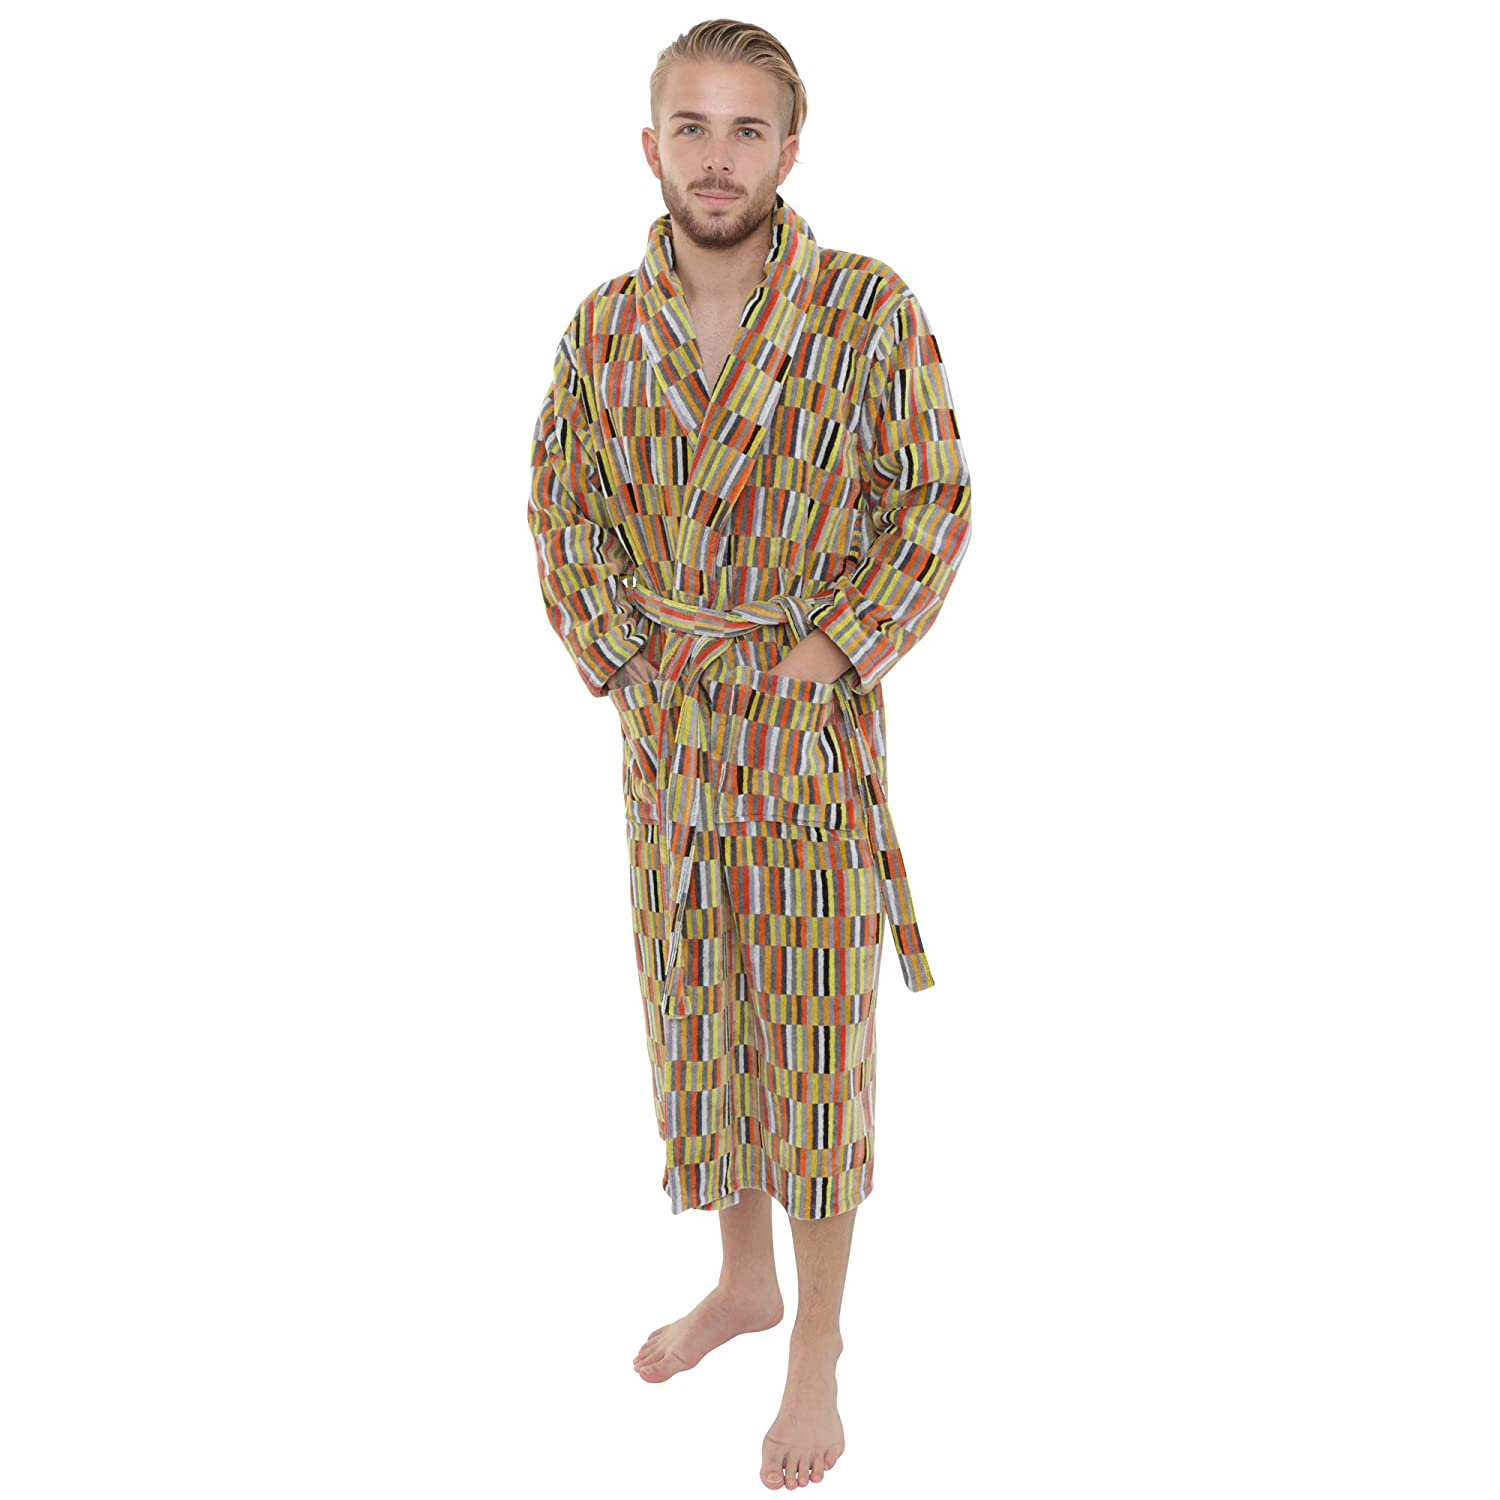 4026ba1202 Artemis Mens and Ladies Unisex Luxury Velour Towelling Dressing Gown  Bathrobe. Grey Yellow Orange Multicoloured. S M L XL  Amazon.co.uk  Clothing